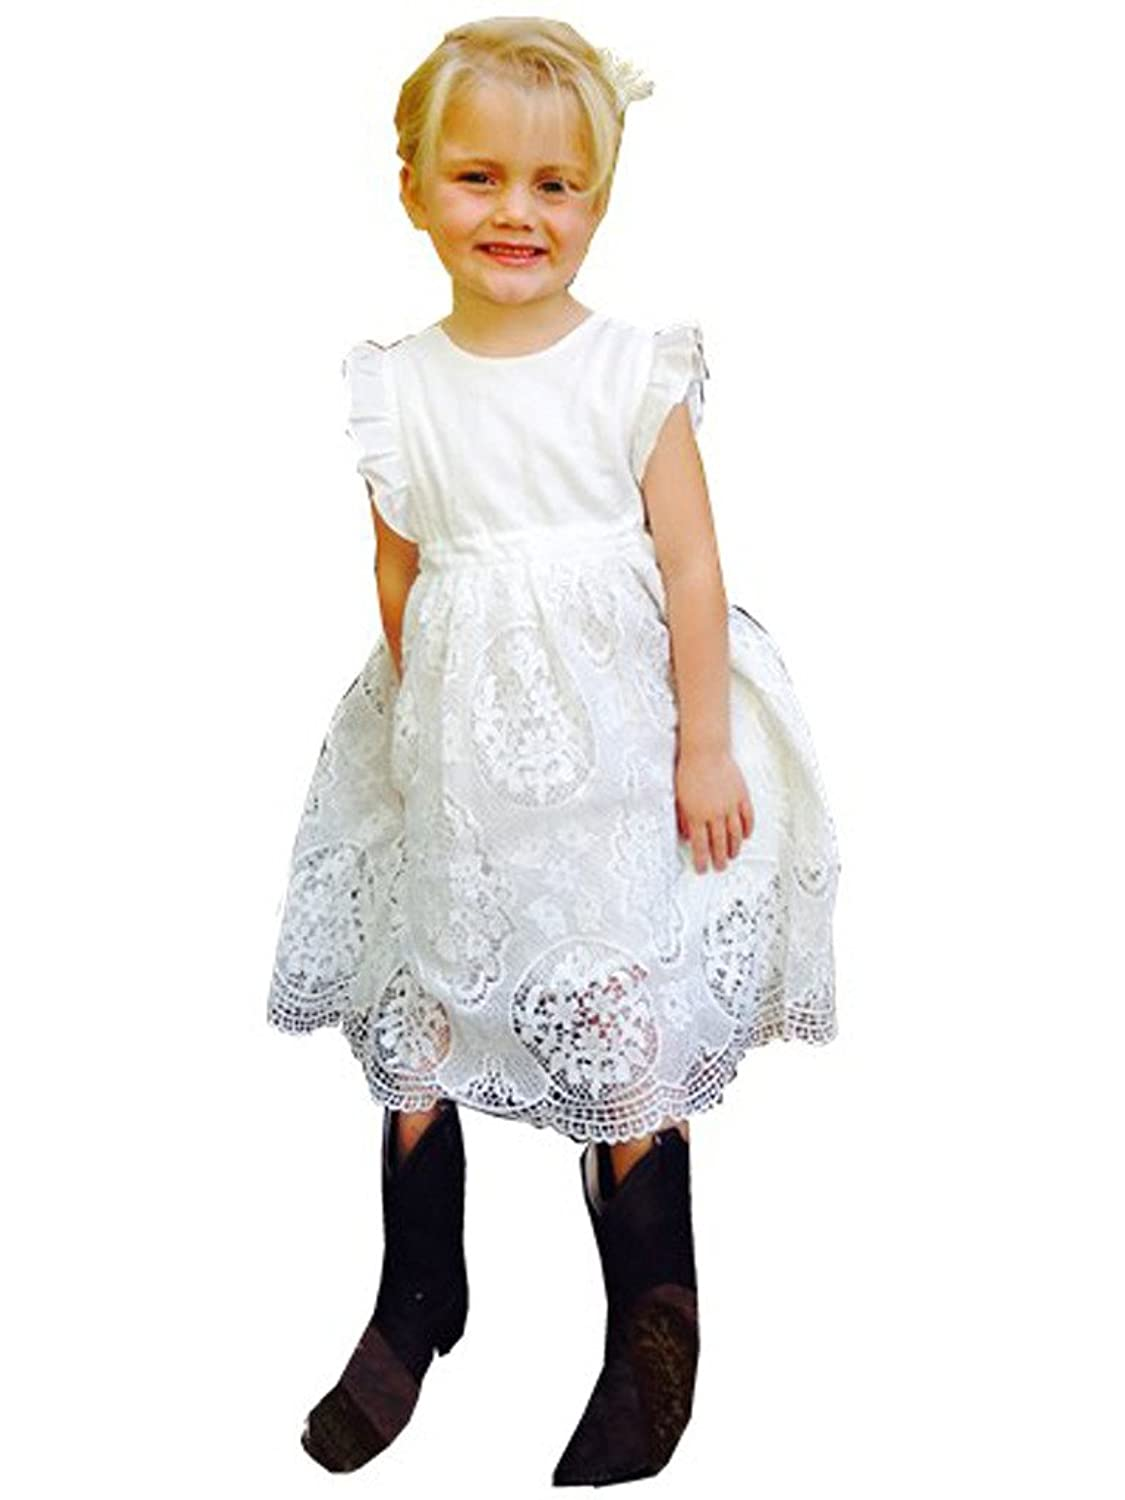 1920s Children Fashions: Girls, Boys, Baby Costumes Bow Dream Flower Girls Dress Vintage Lace $25.99 AT vintagedancer.com